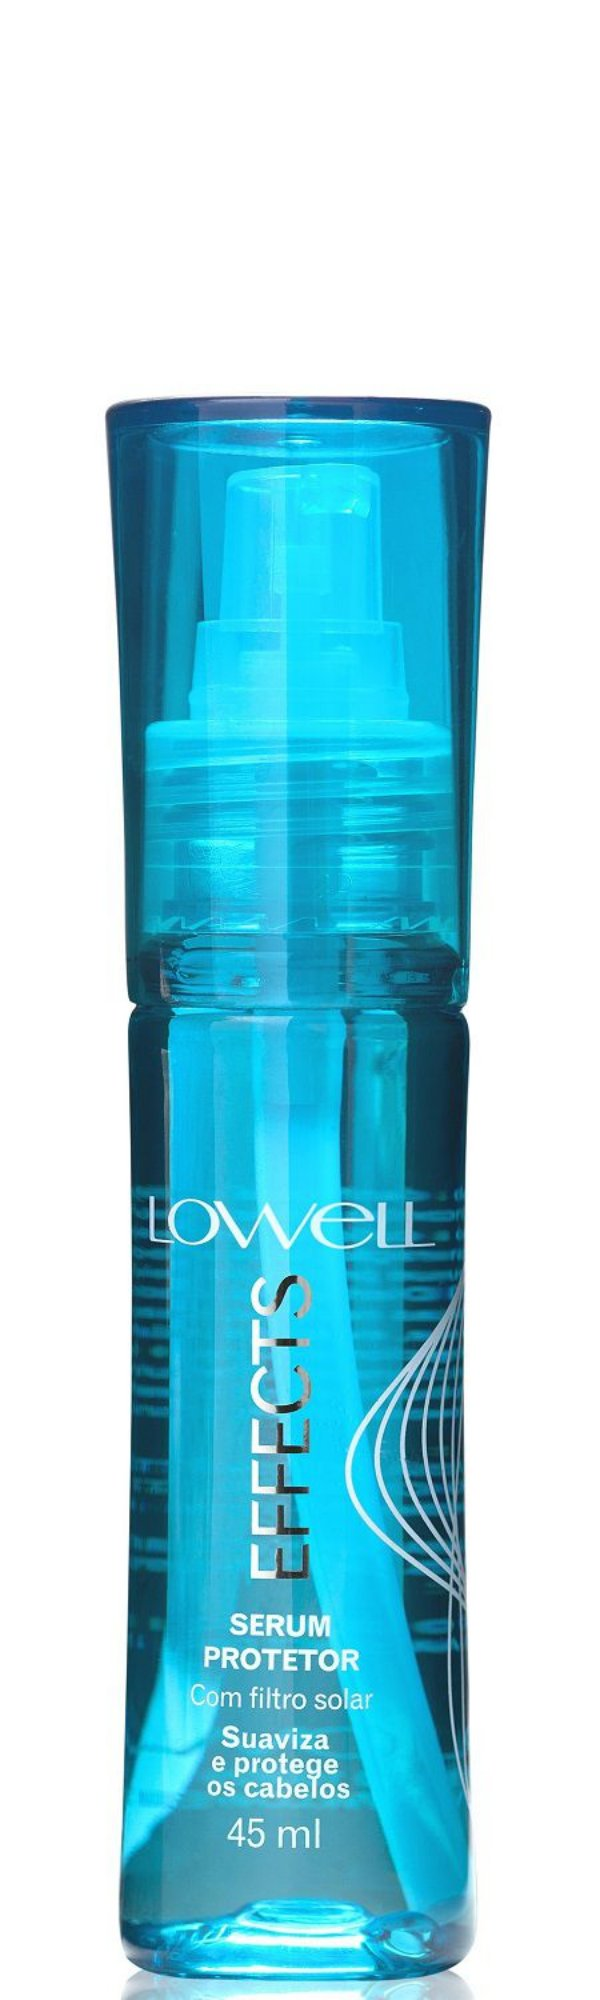 Lowell Effects Protetor - Sérum 45ml